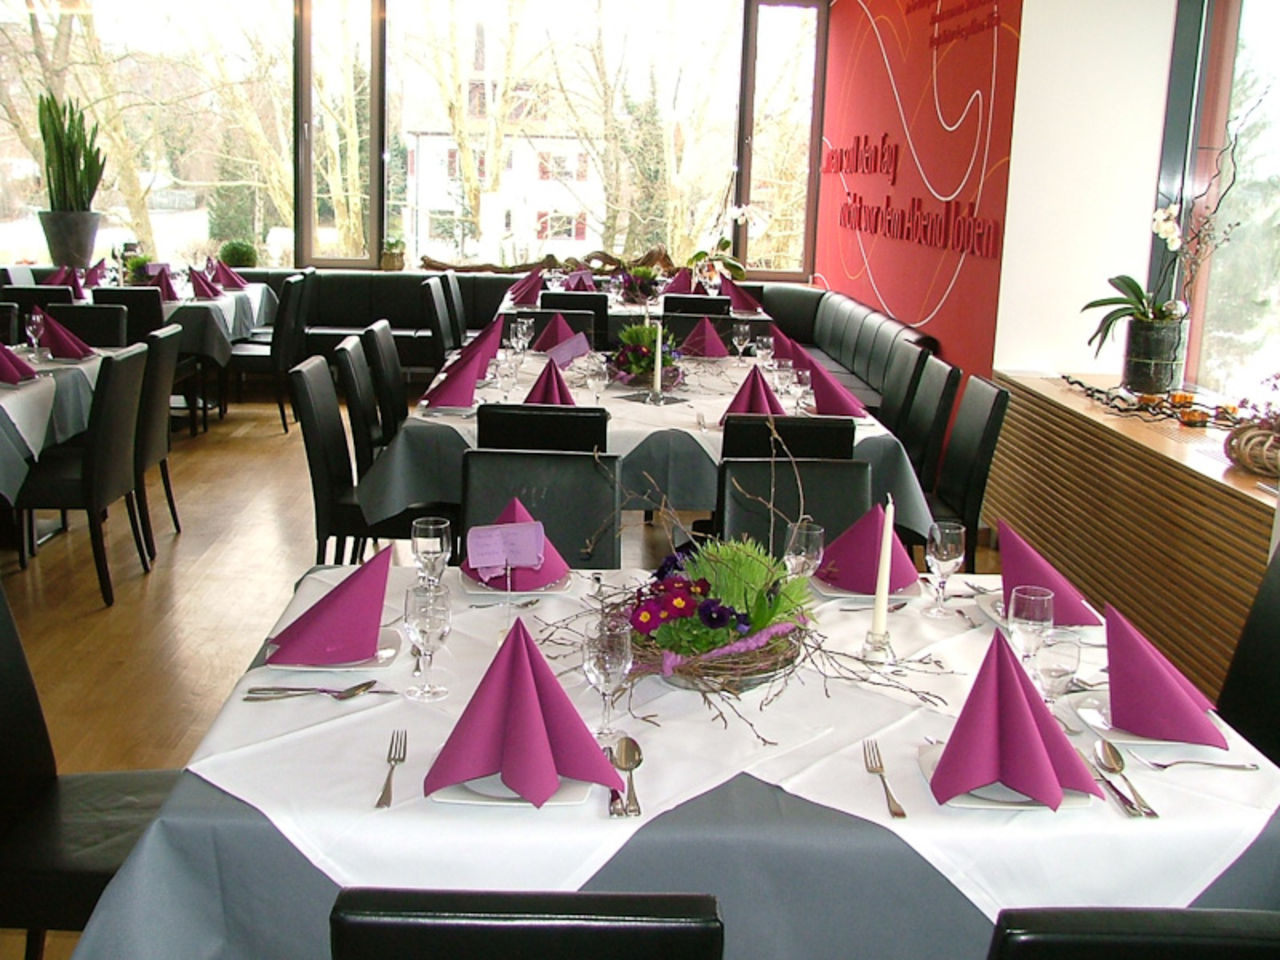 A photo of Jägers Restaurant Schillerhöhe